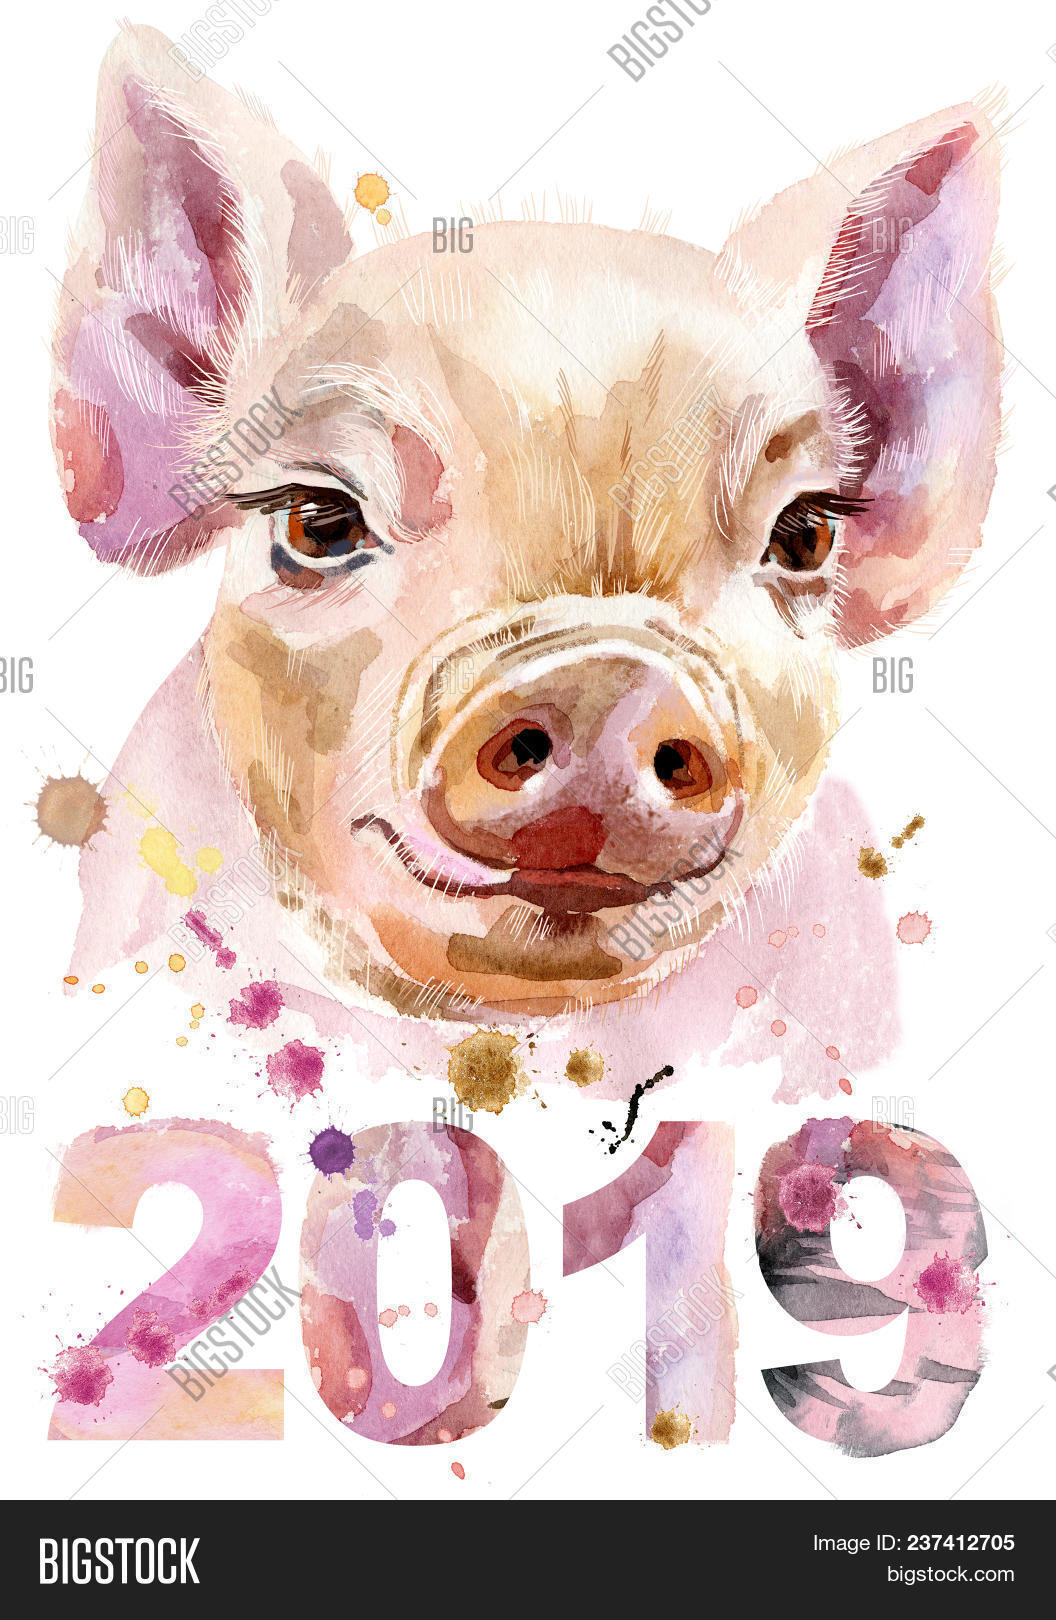 Cute piggy. Pig for T-shirt graphics. Watercolor pink mini pig illustration. New year 2019